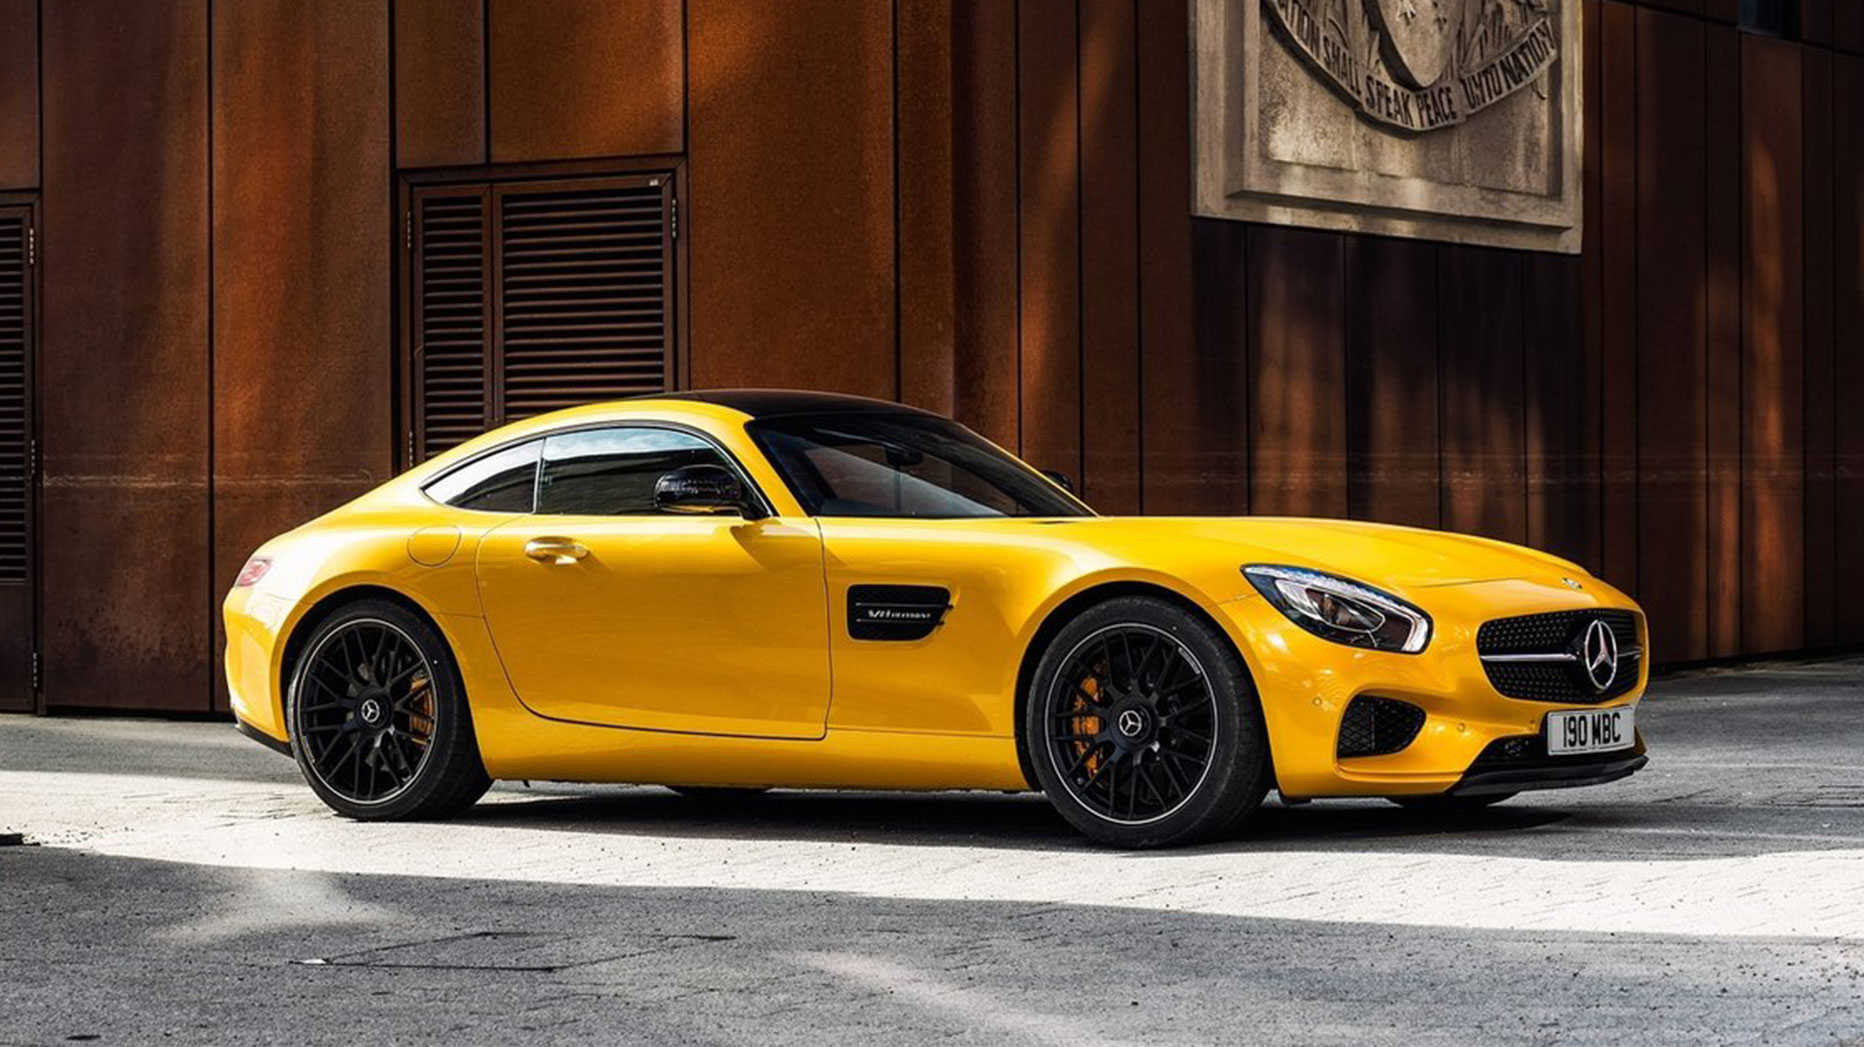 Mercedes-Benz AMG Finance Offers at Lookers